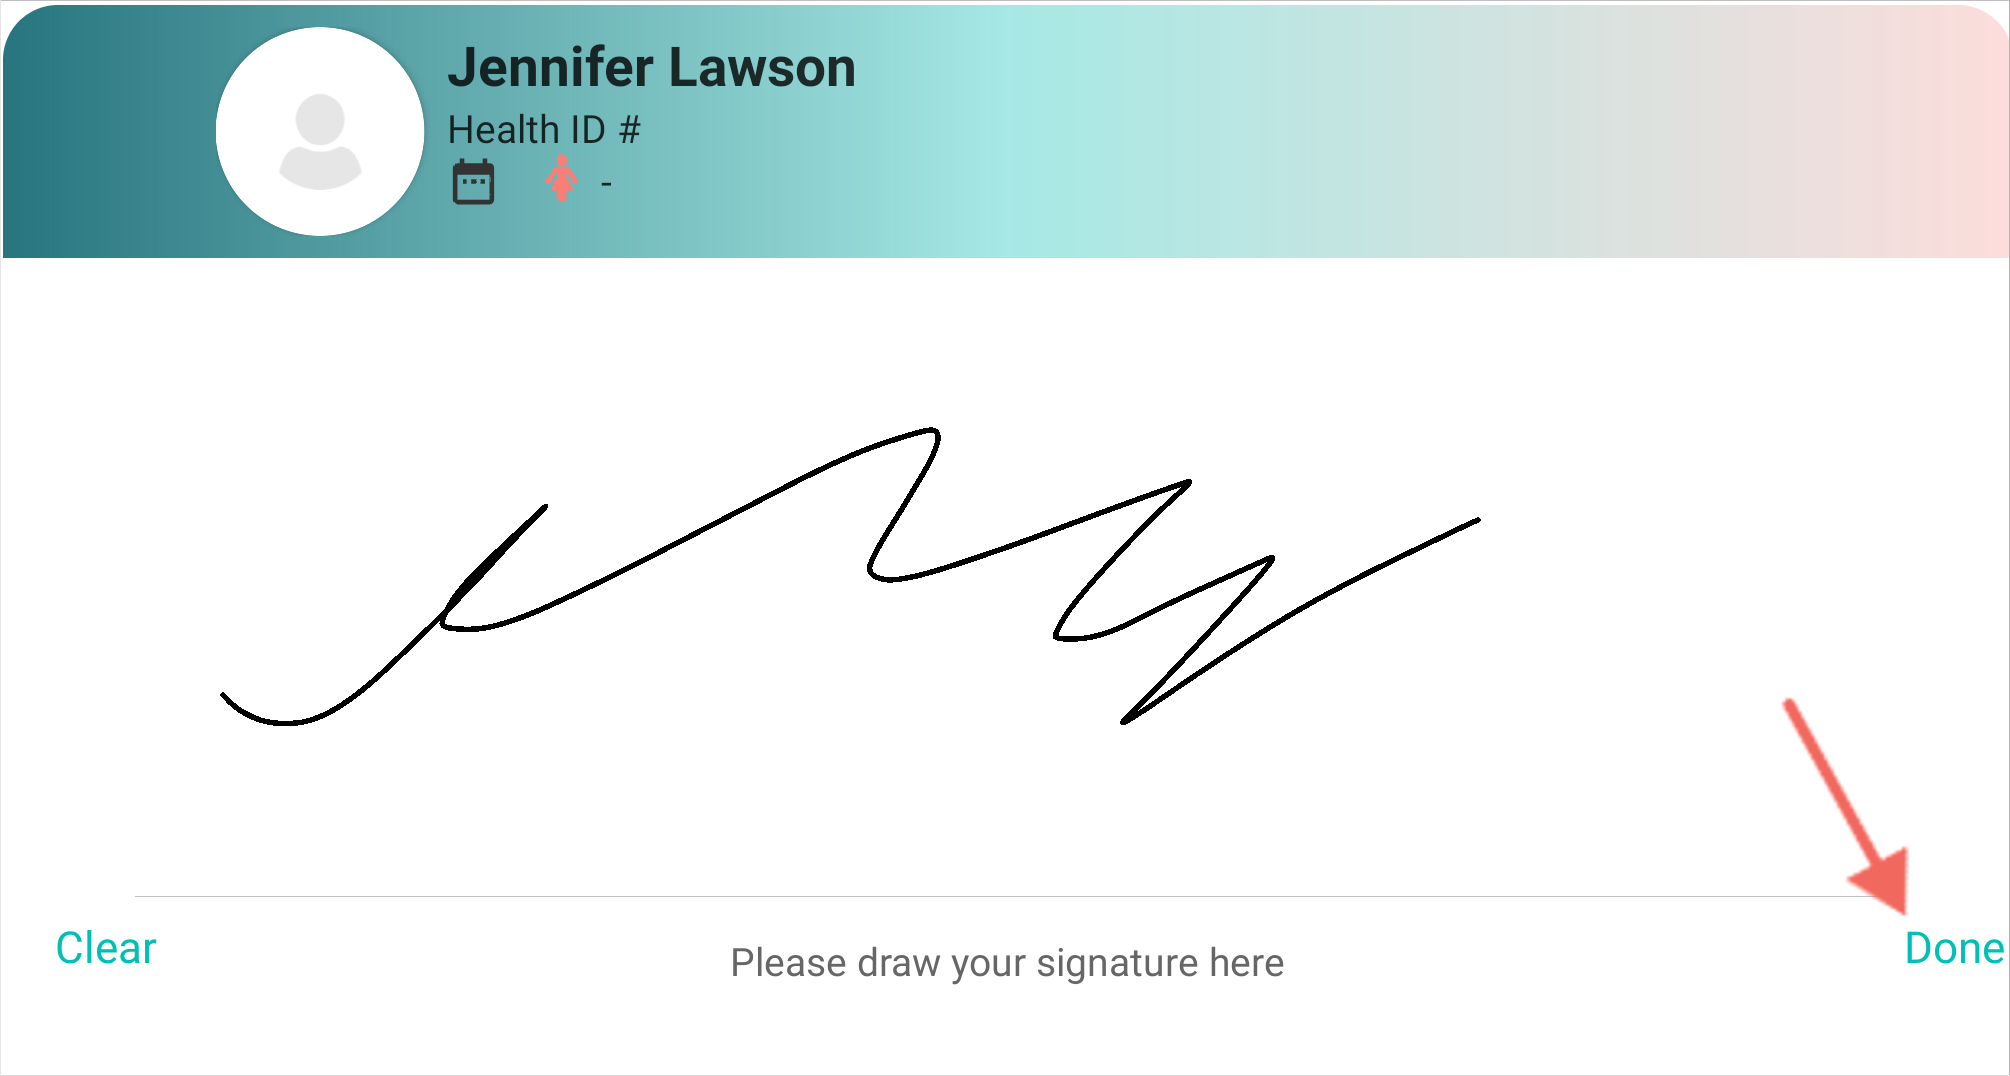 6._Obtain_Signature.png